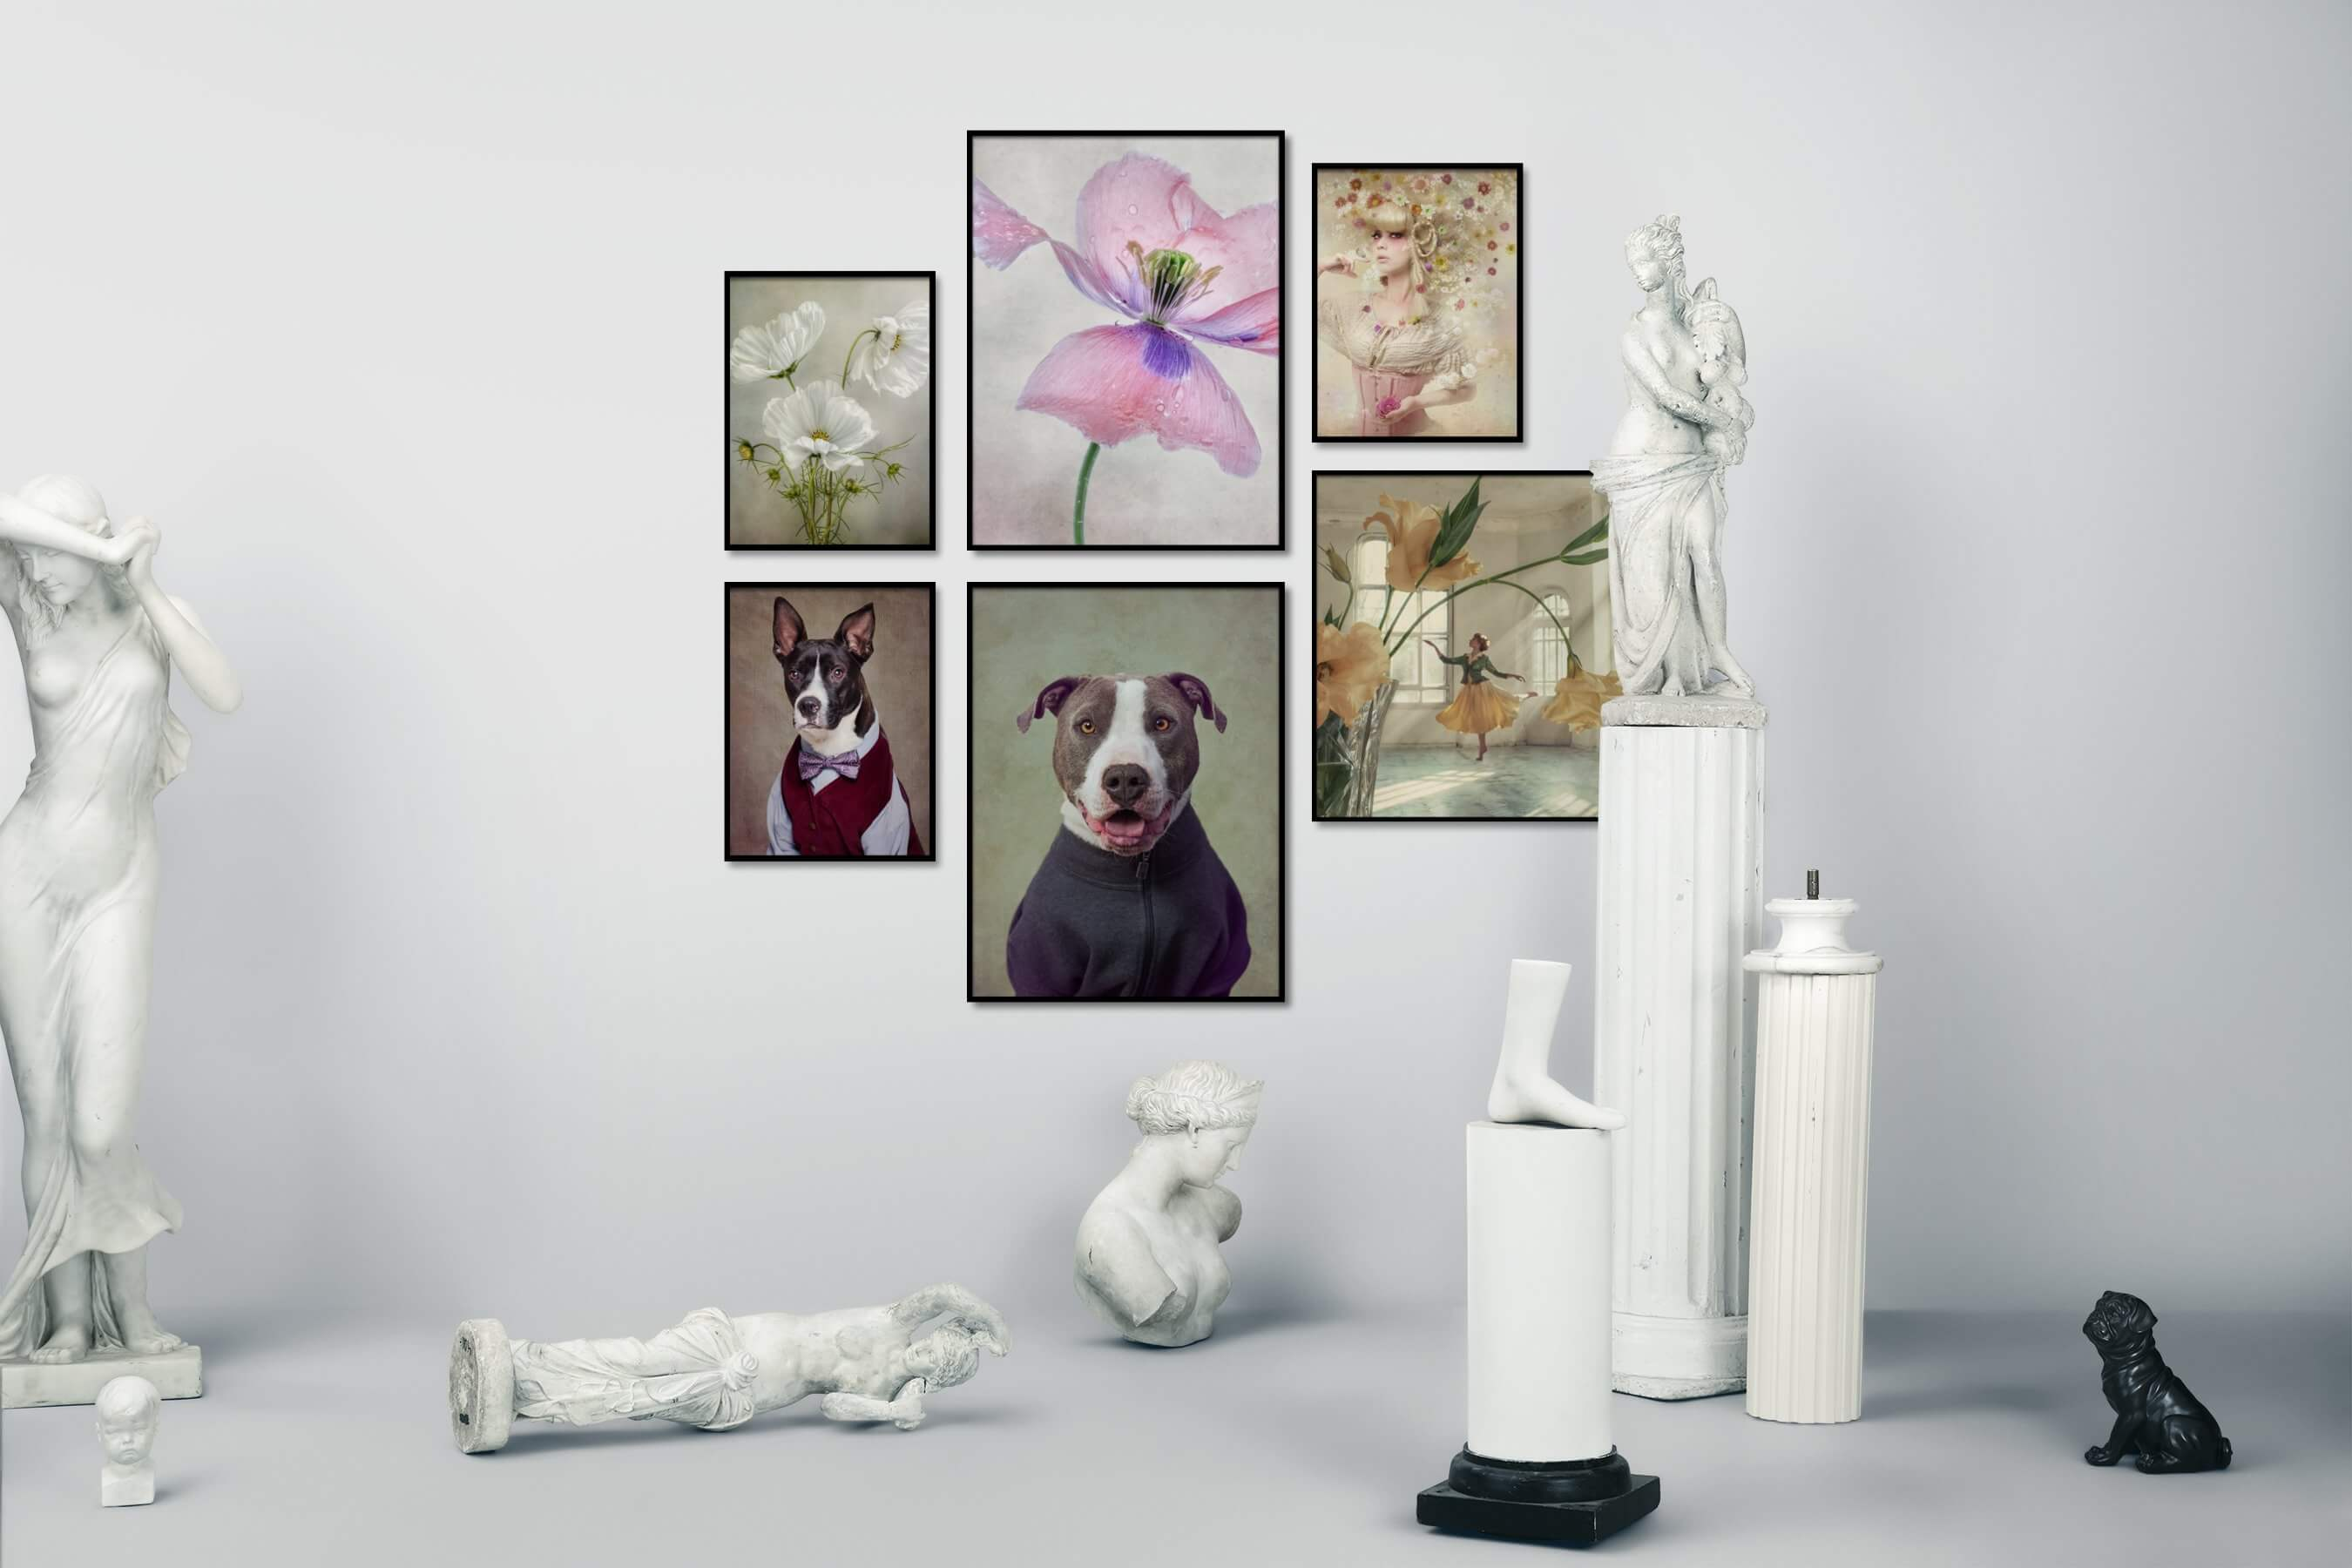 Gallery wall idea with six framed pictures arranged on a wall depicting Flowers & Plants, Vintage, For the Moderate, Animals, and Fashion & Beauty